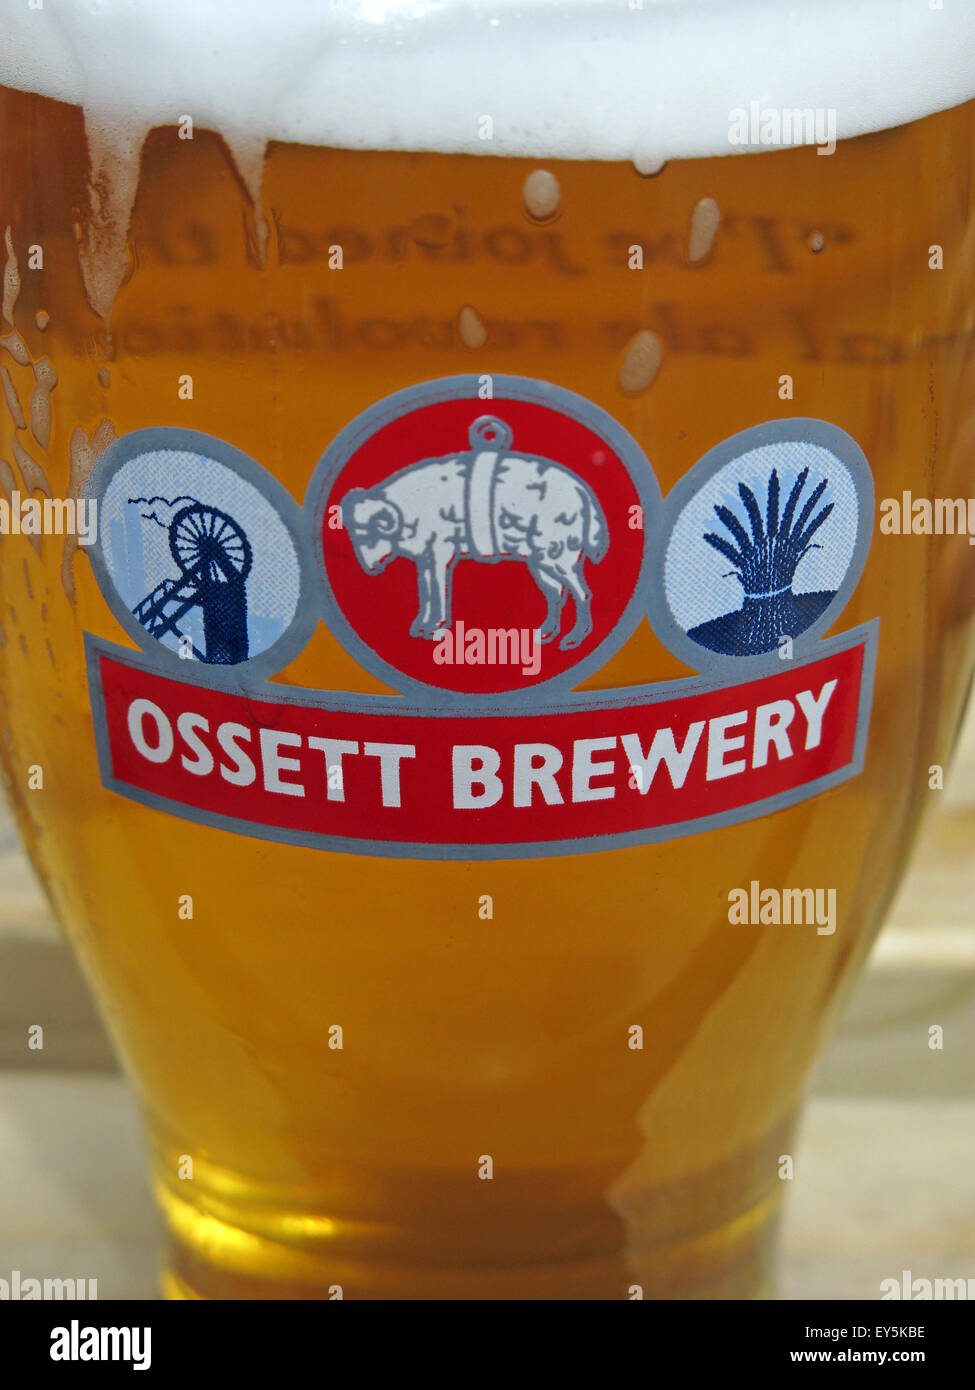 Glass of beer from the Ossett Brewery, Wakefield,Yorkshire,England,UK - Stock Image